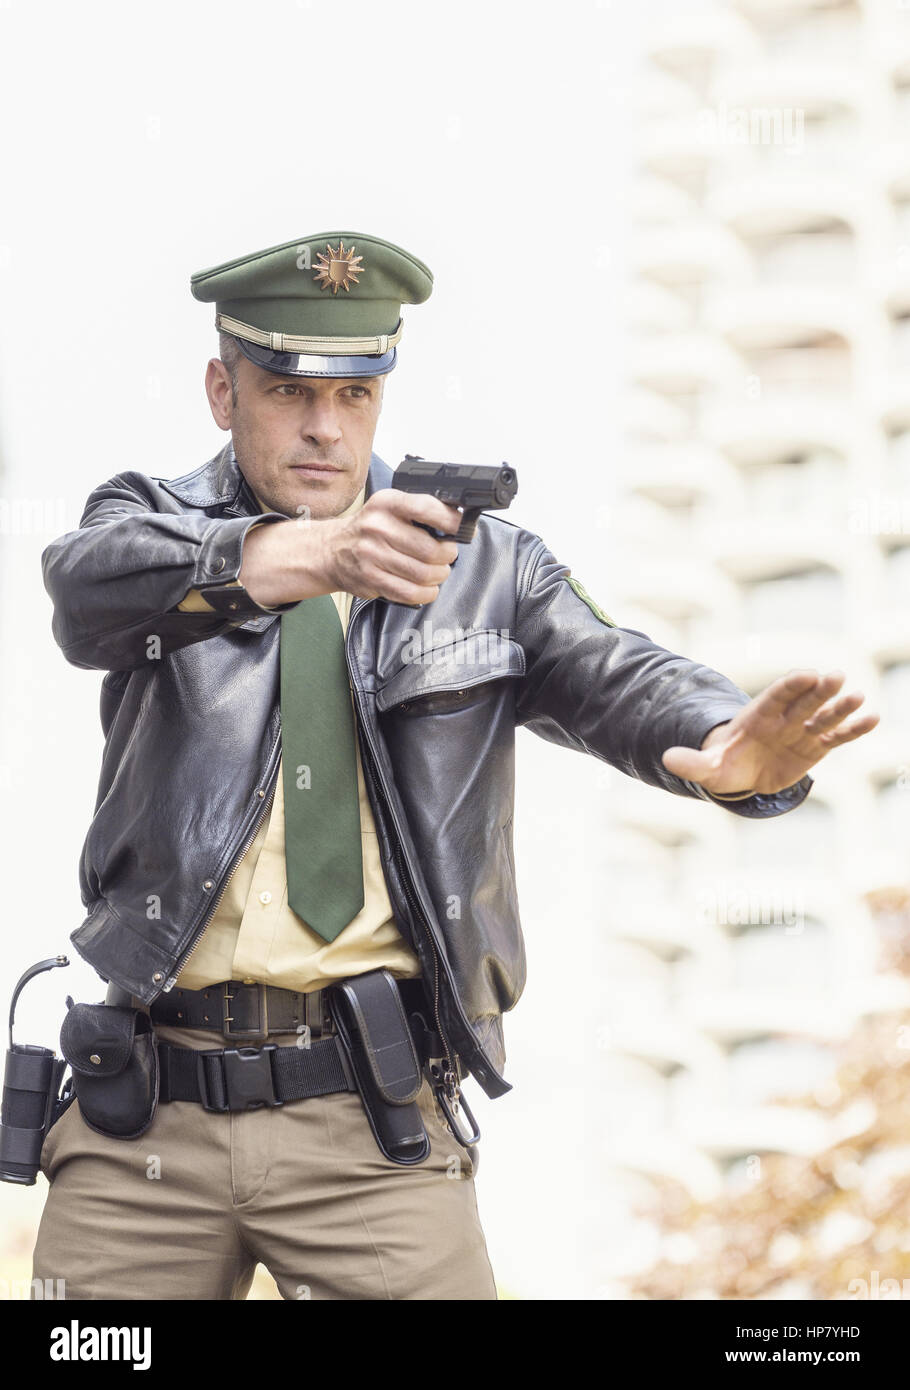 Deutscher Polizist Model Released Stock Photo Royalty